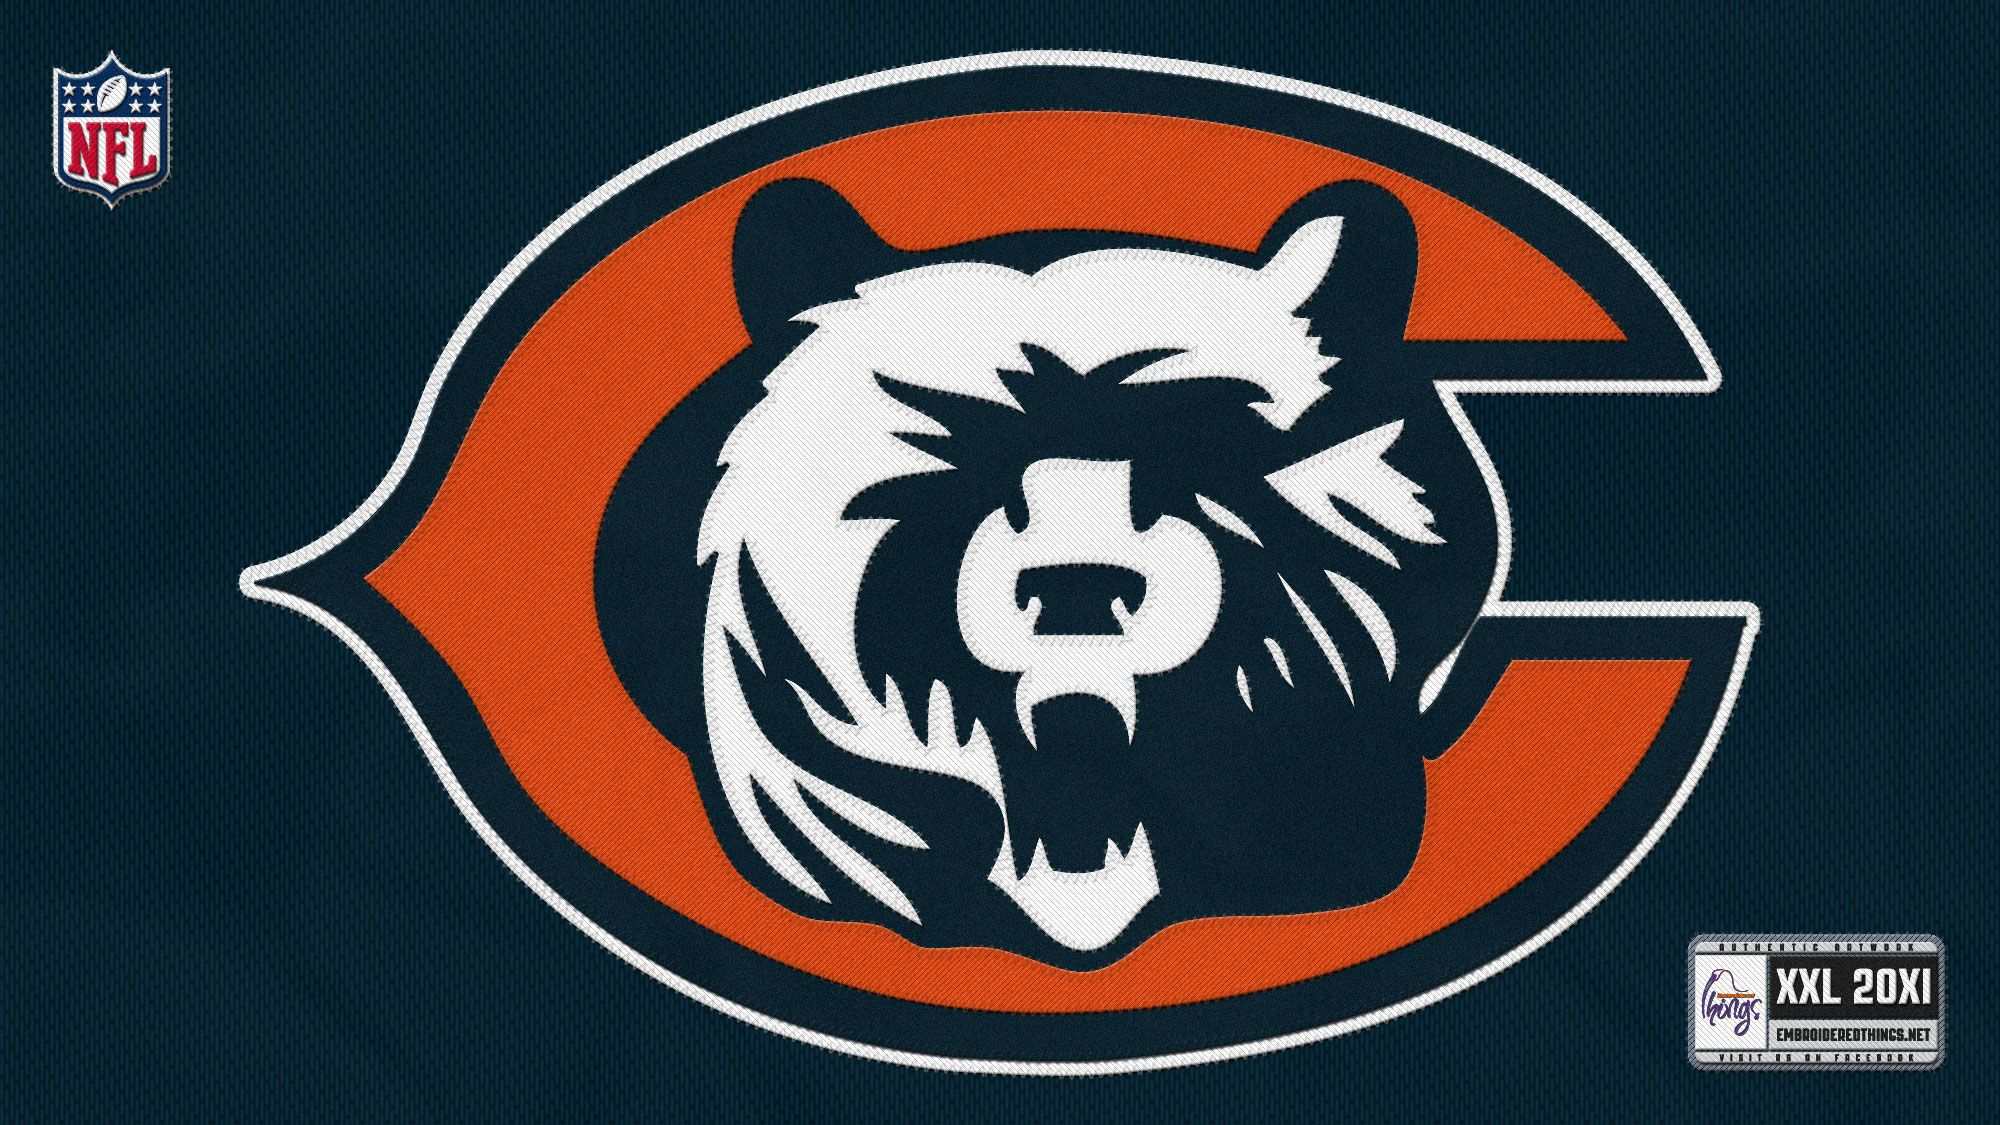 2000x1125 - Chicago Bears Wallpapers 26